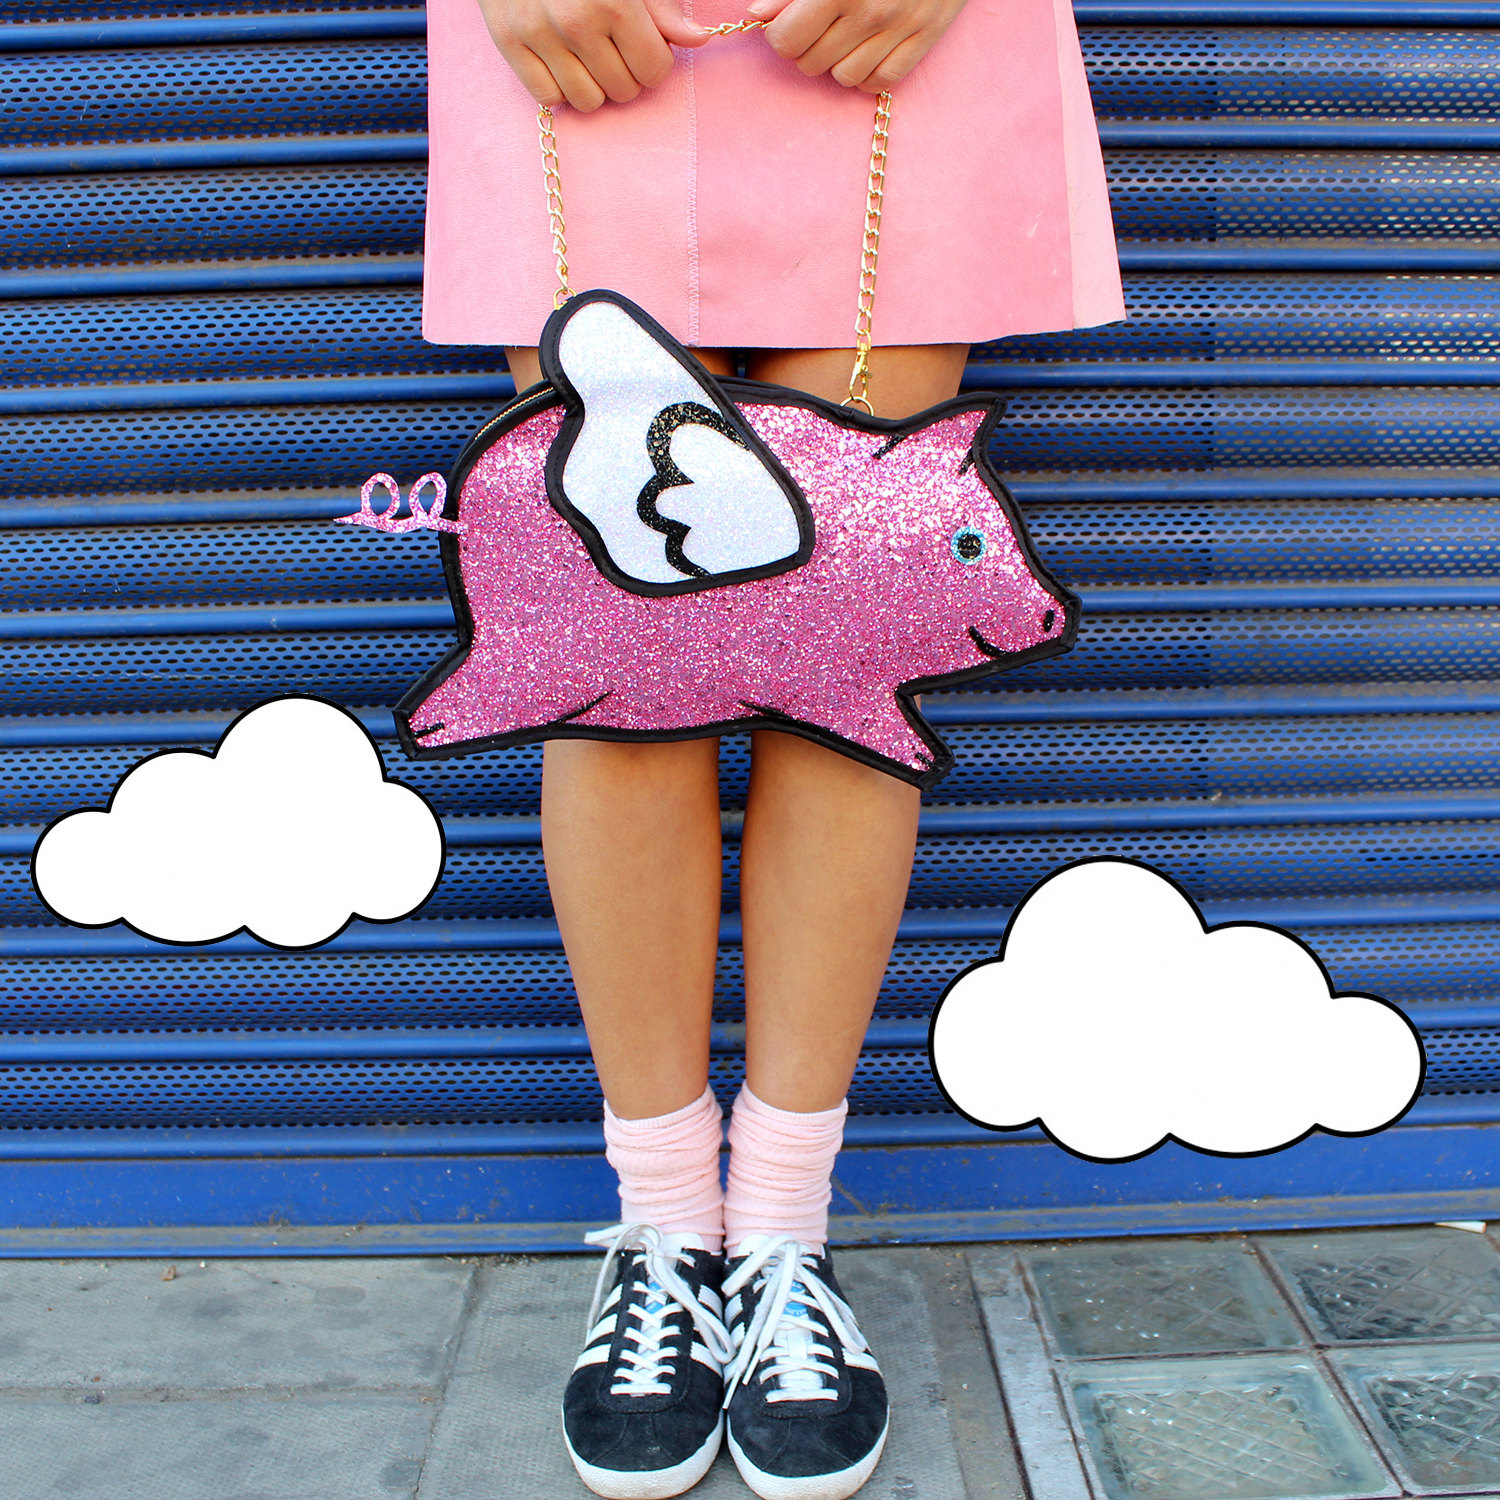 Luna on the Moon pigs fly purse